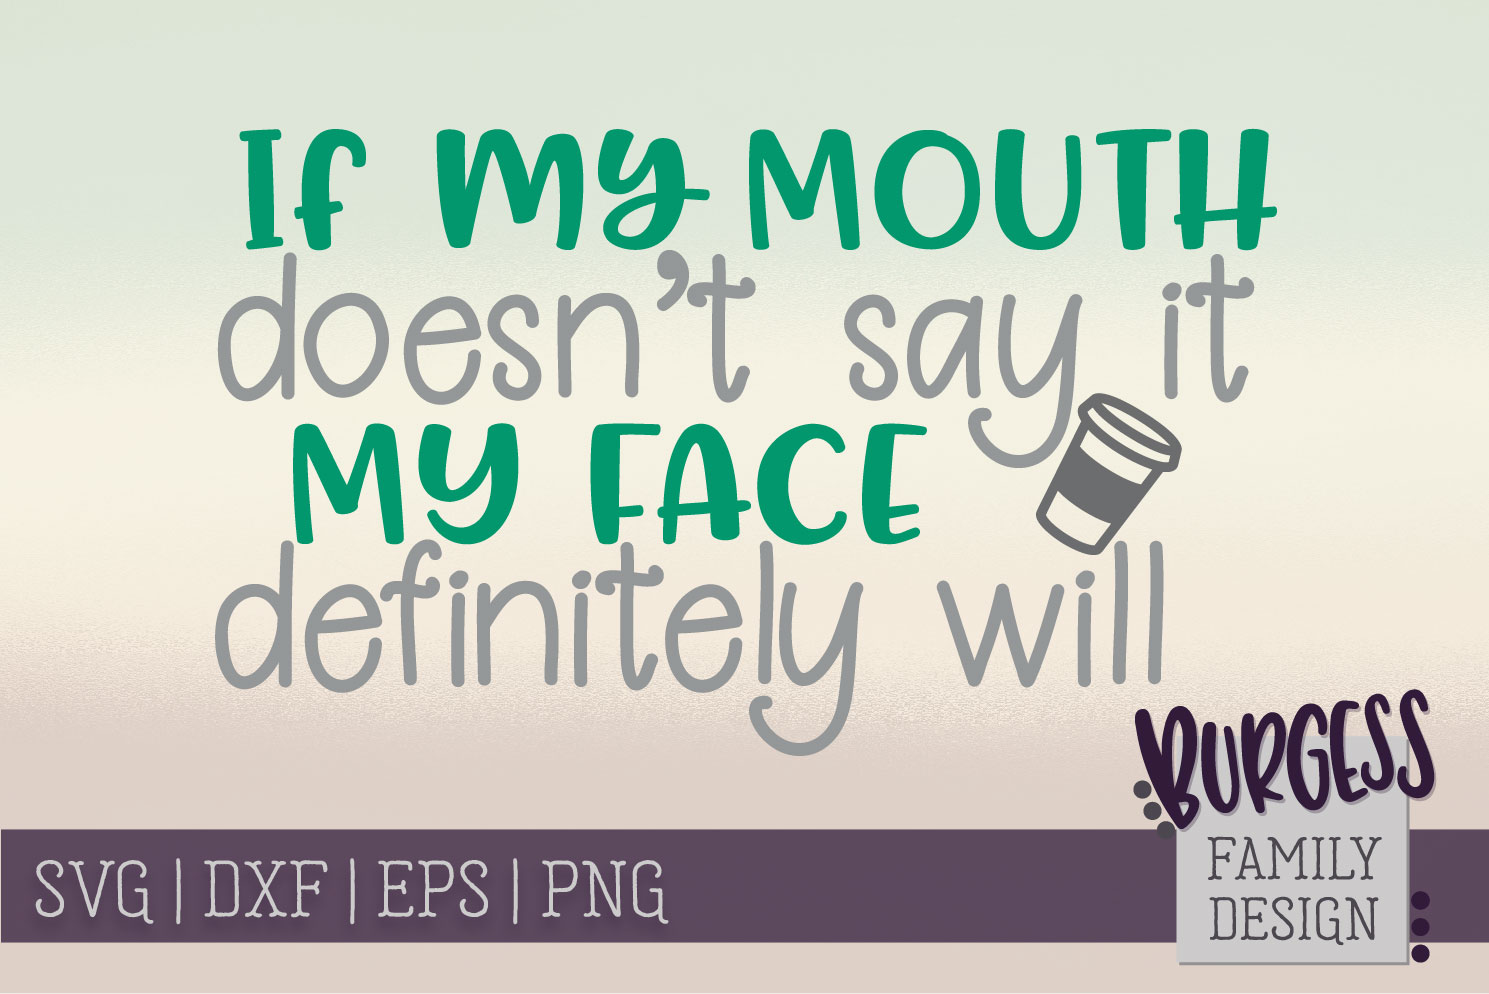 If my mouth doesn't say it my face will | SVG DXF EPS PNG example image 1